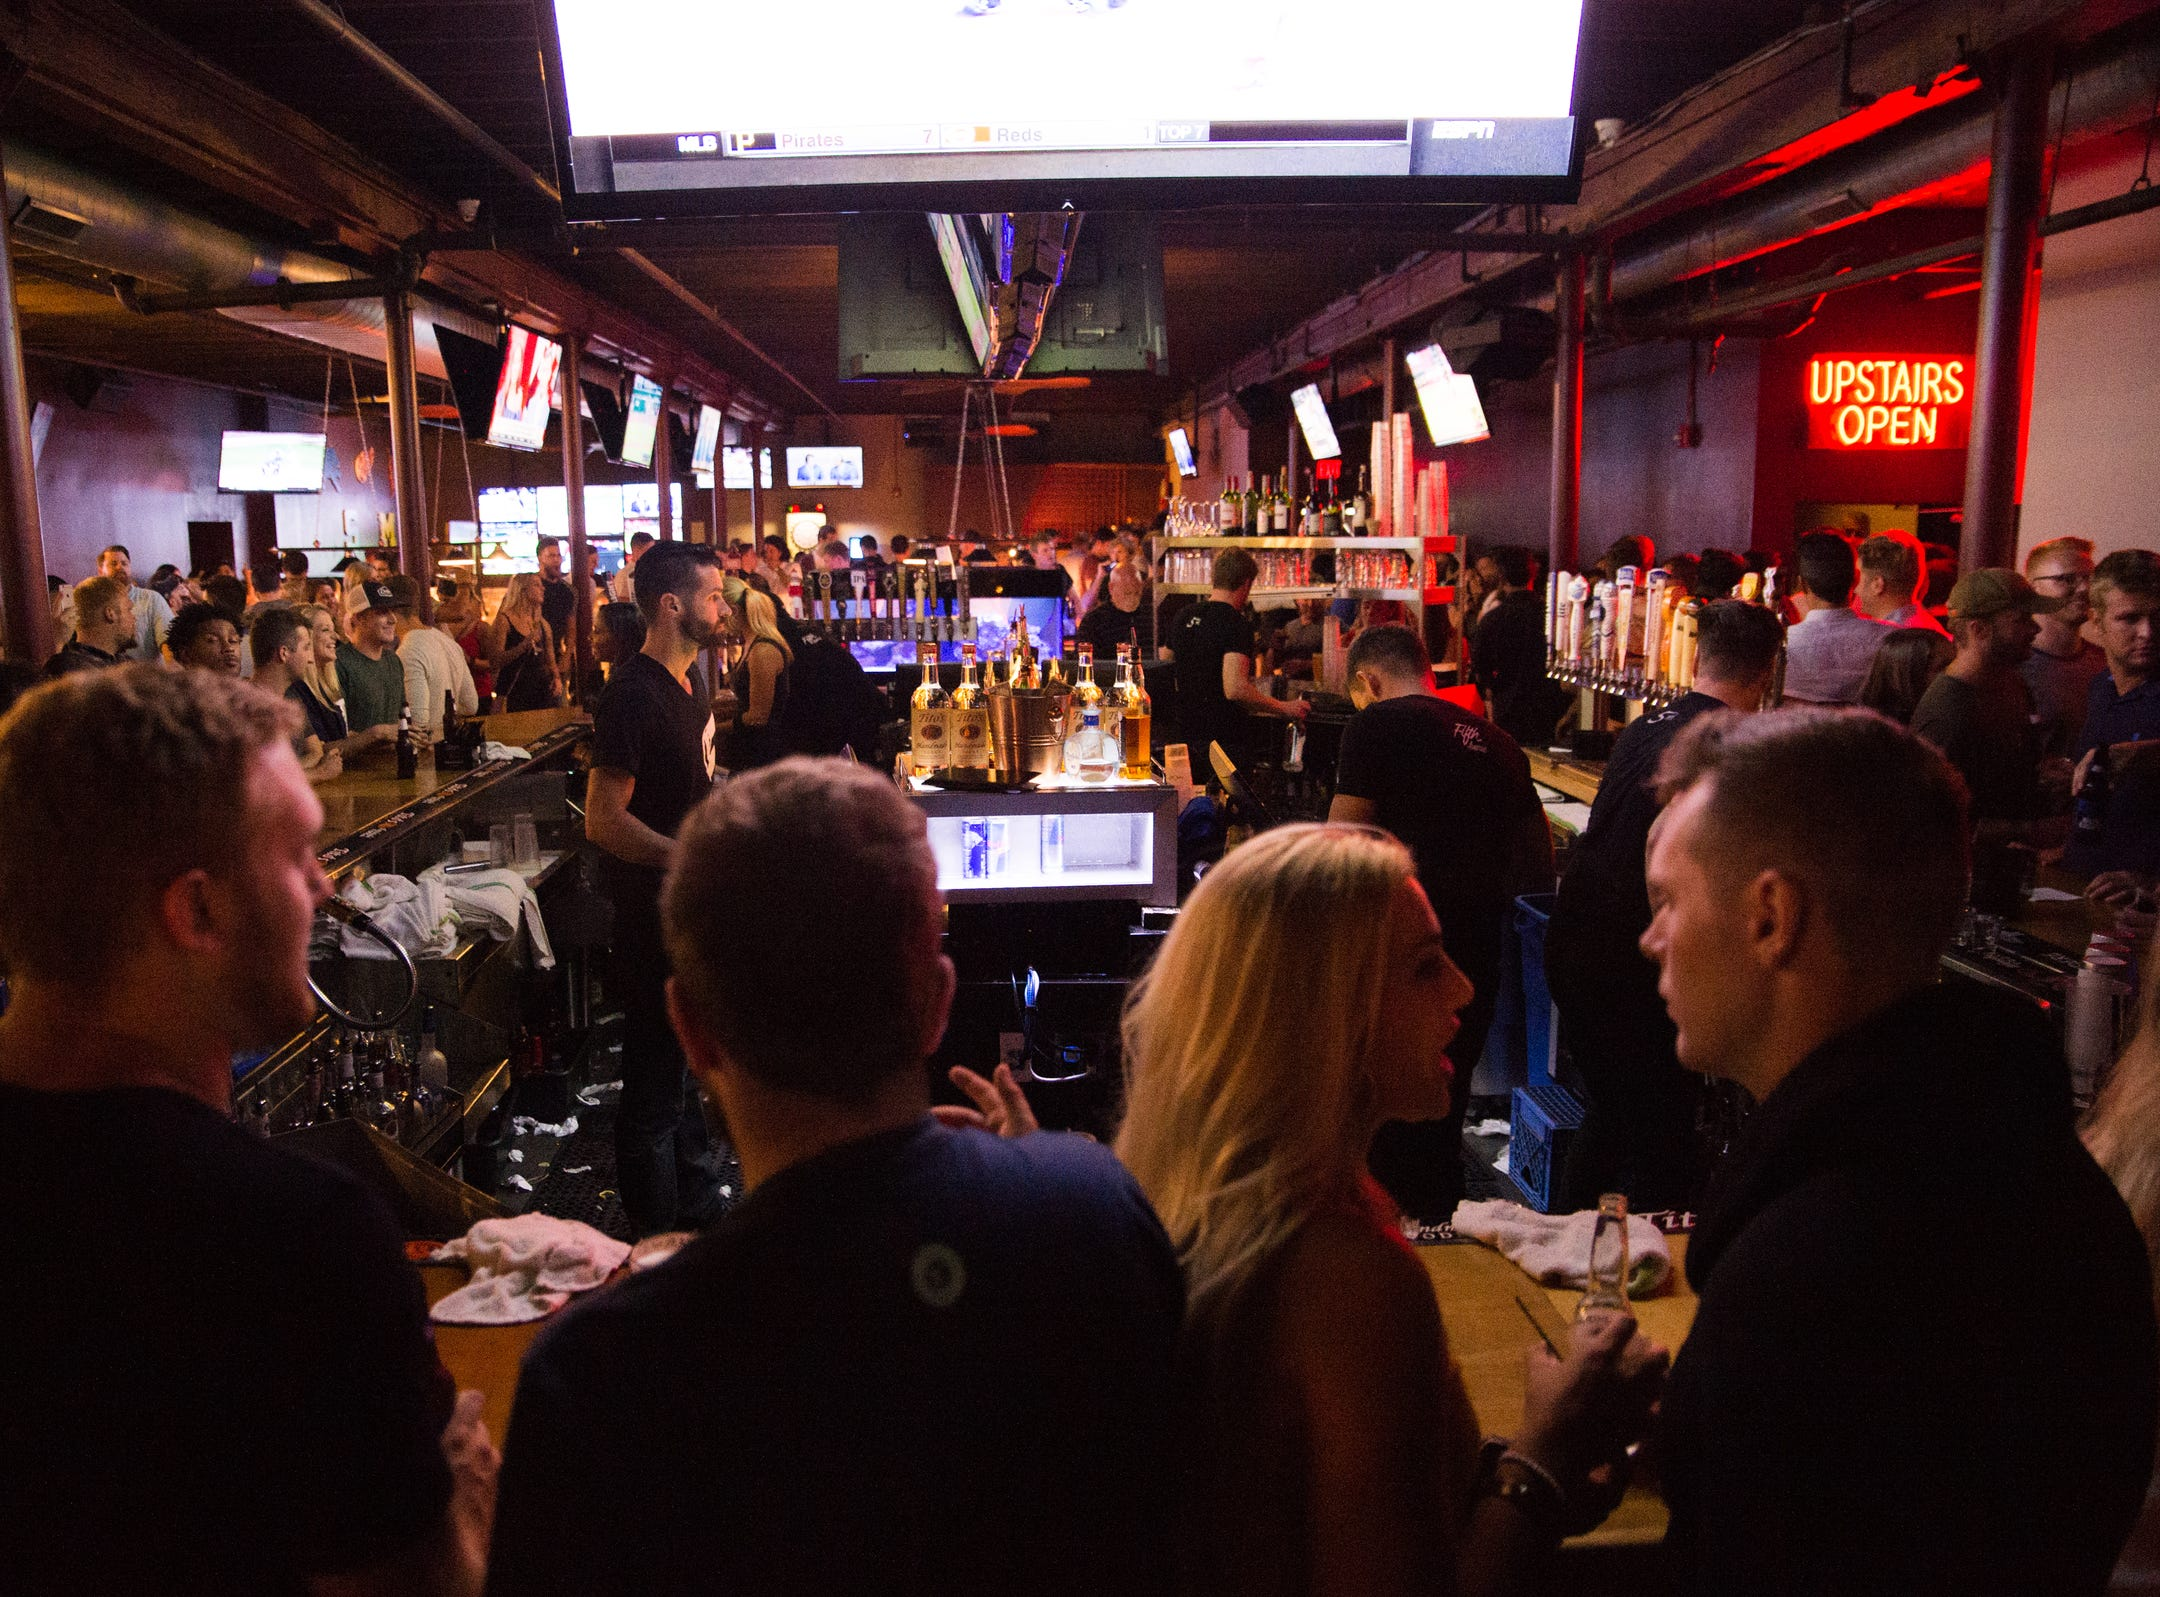 Guests surround the bar at Fifth Avenue nightclub in Royal Oak on Friday, July 20, 2018.